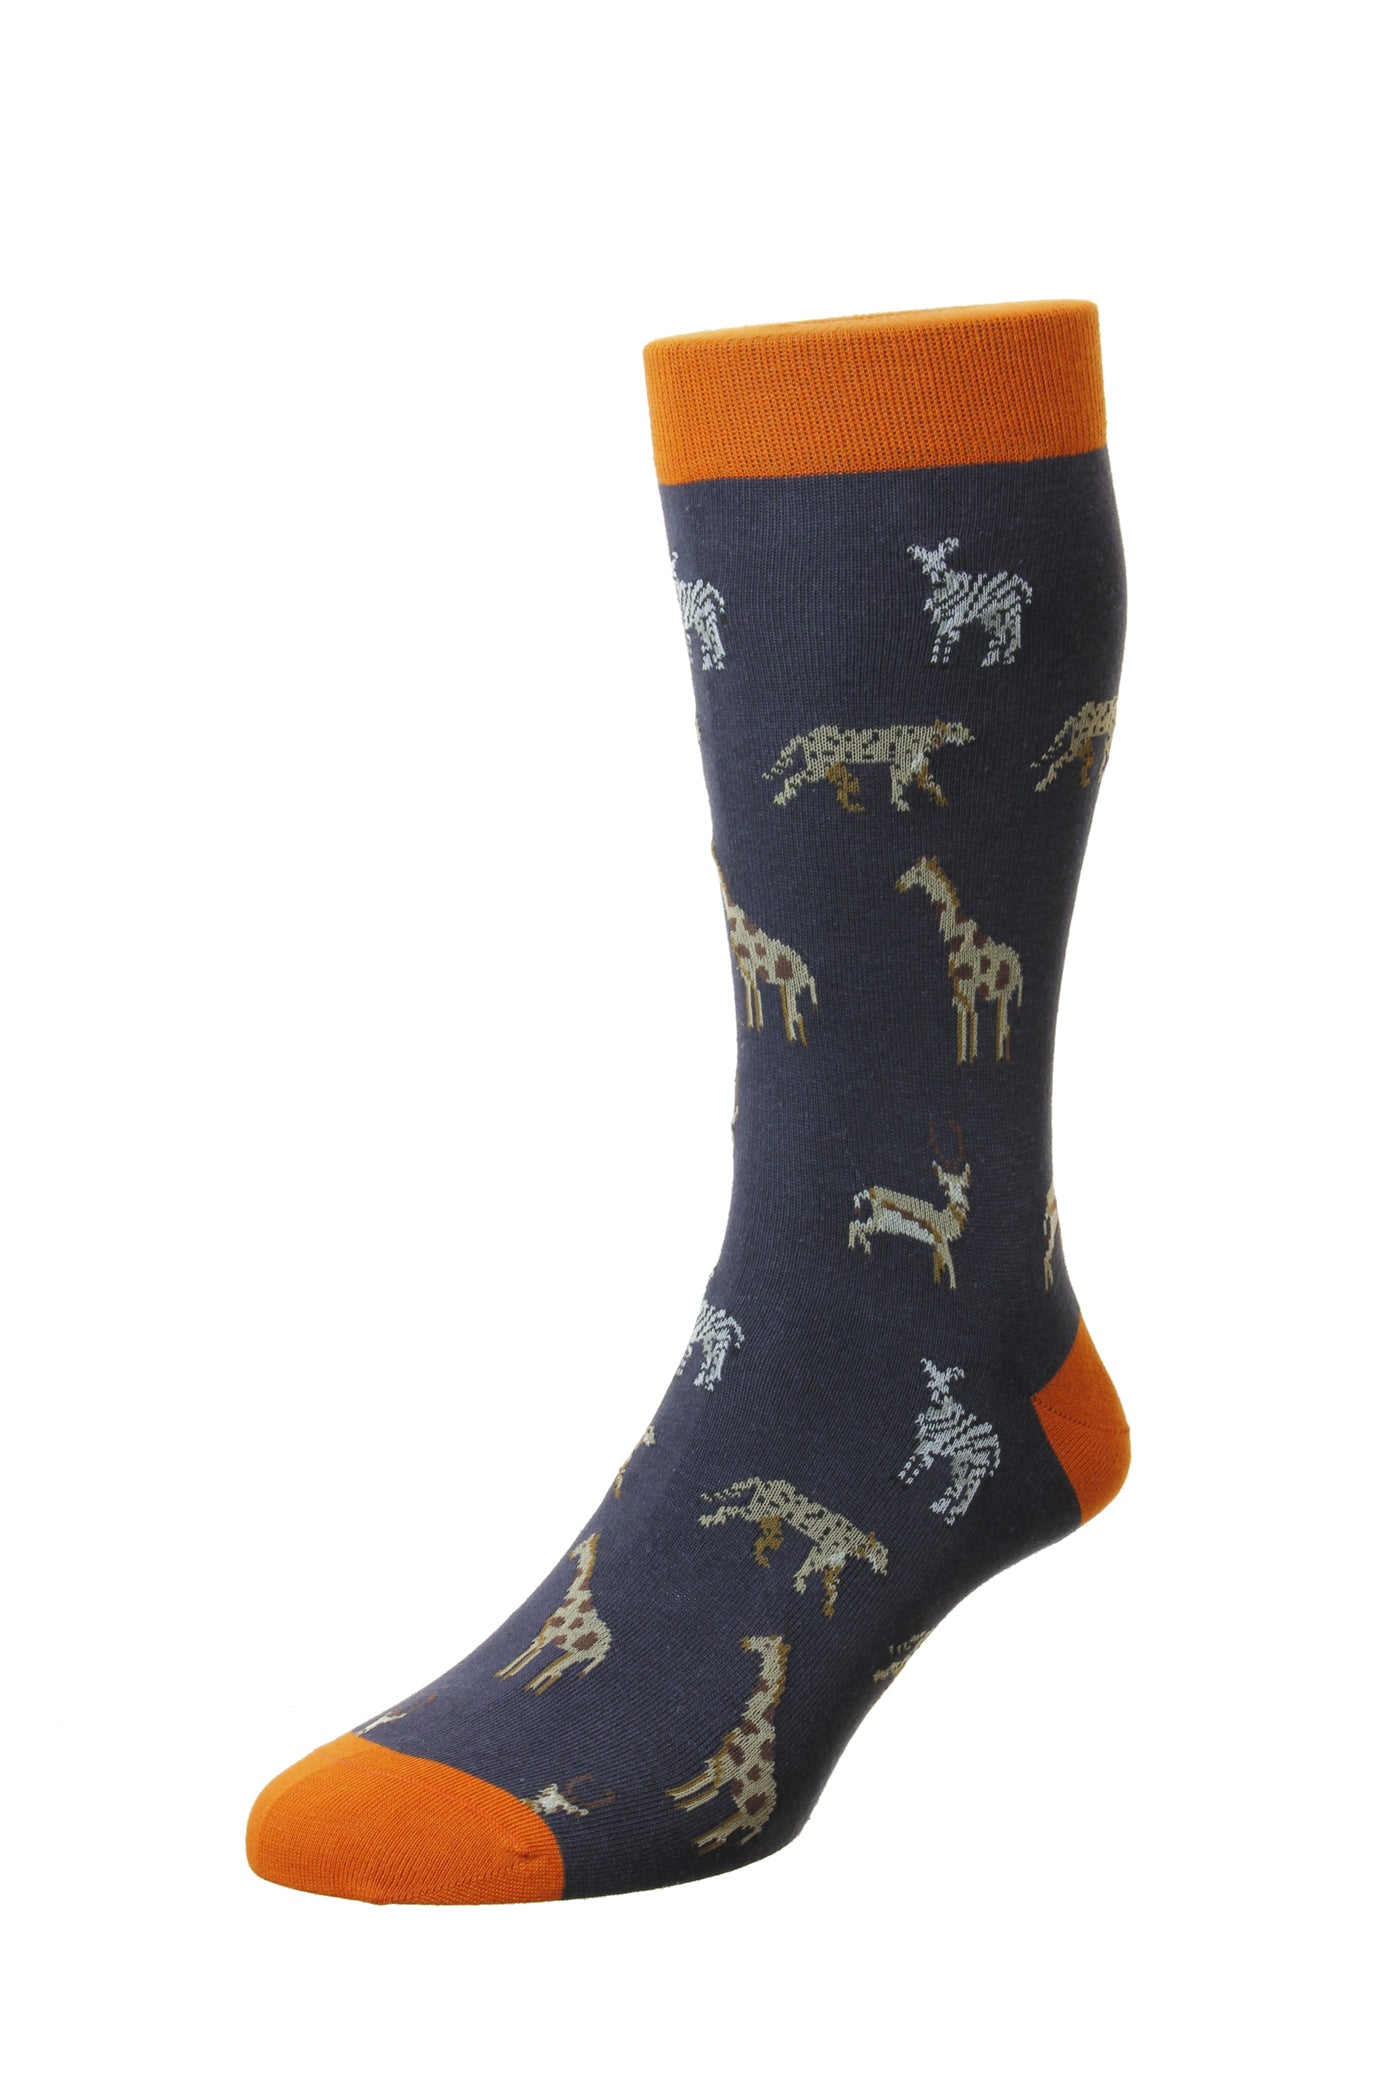 Schott Nichol by Pantherella - Serengeti - Navy Socks